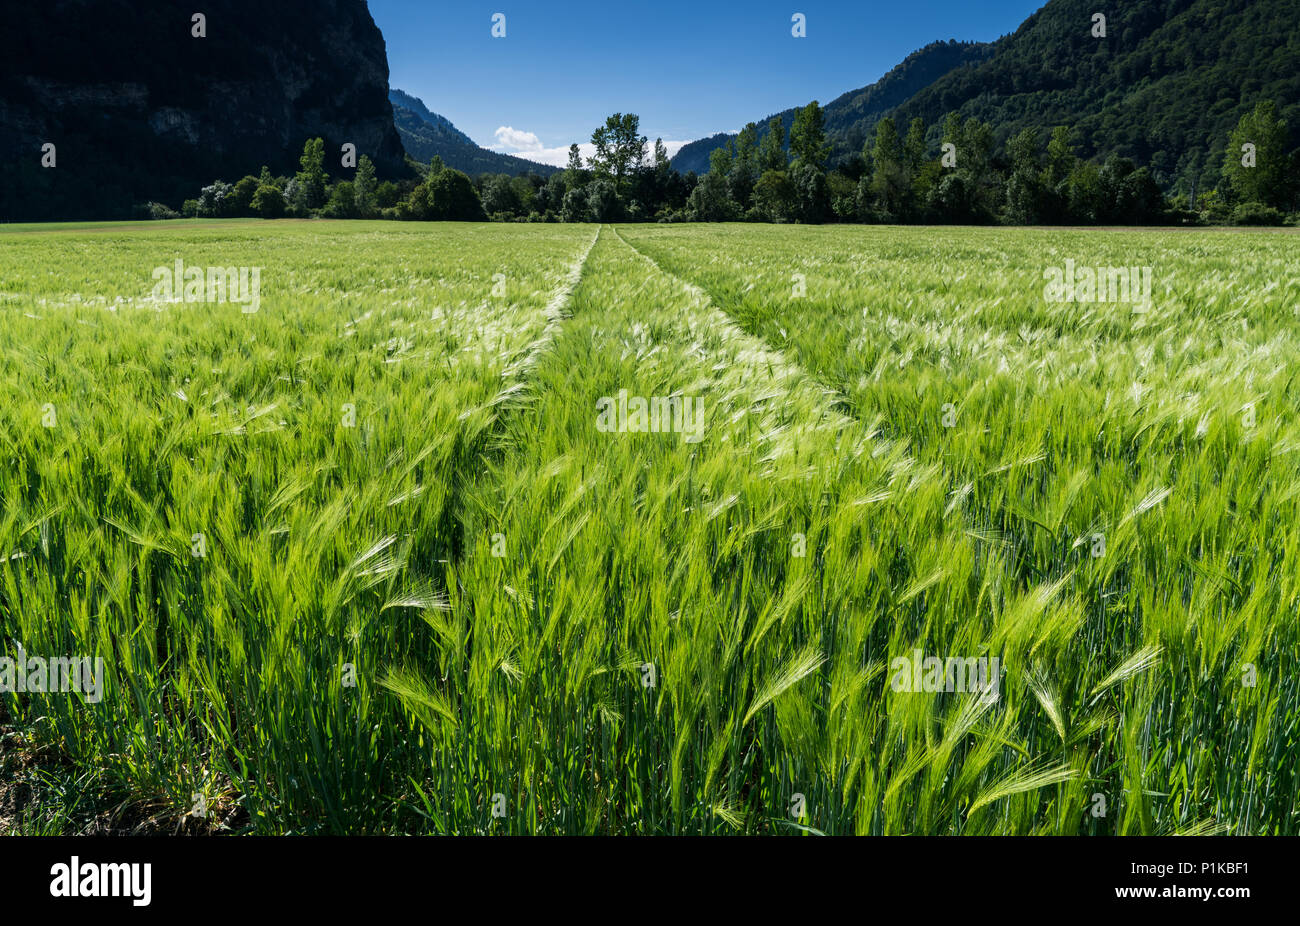 expansive wheat field in lustrous green with a forest in the background Stock Photo